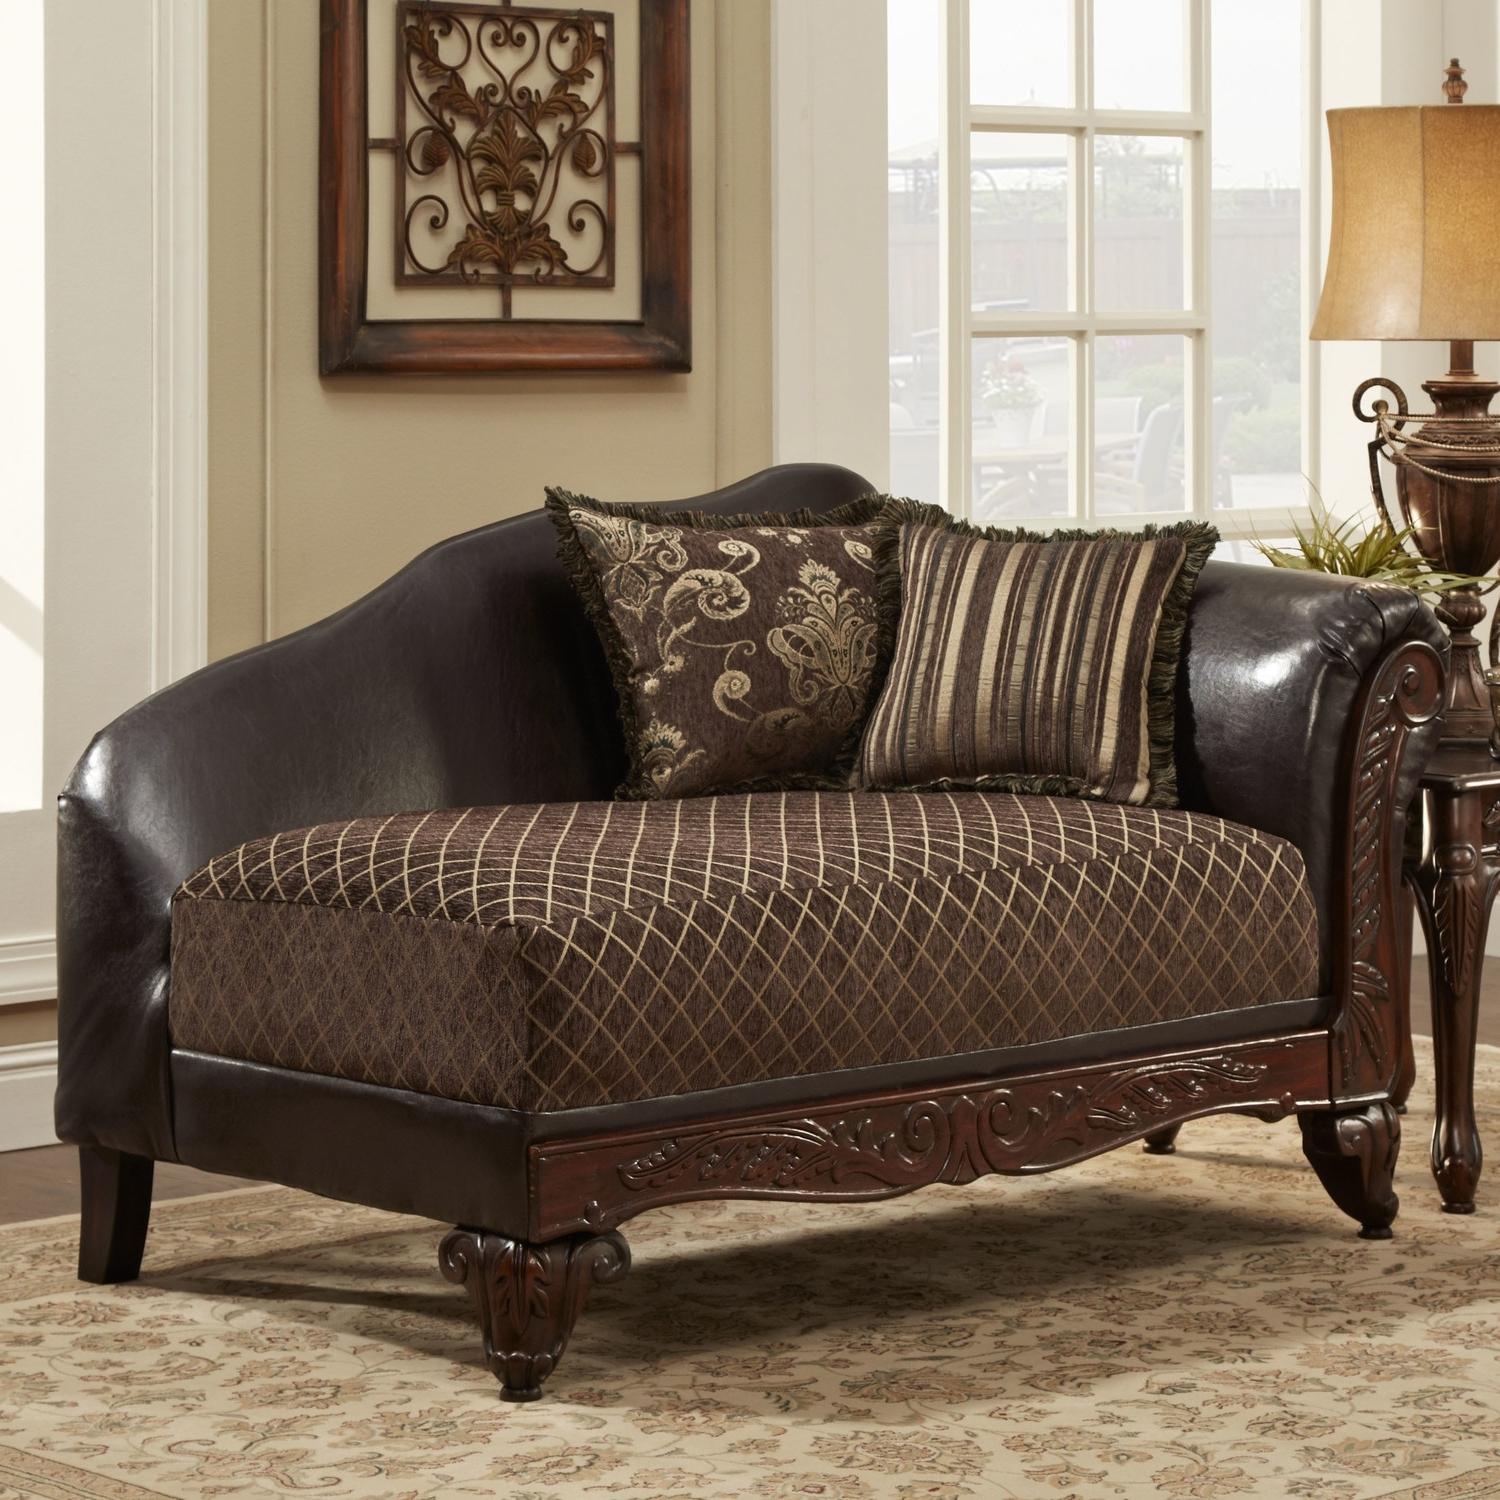 Newest Wonderful Brown Leather Chaise Lounge With Traditional Chaise In Brown Leather Chaises (View 12 of 15)